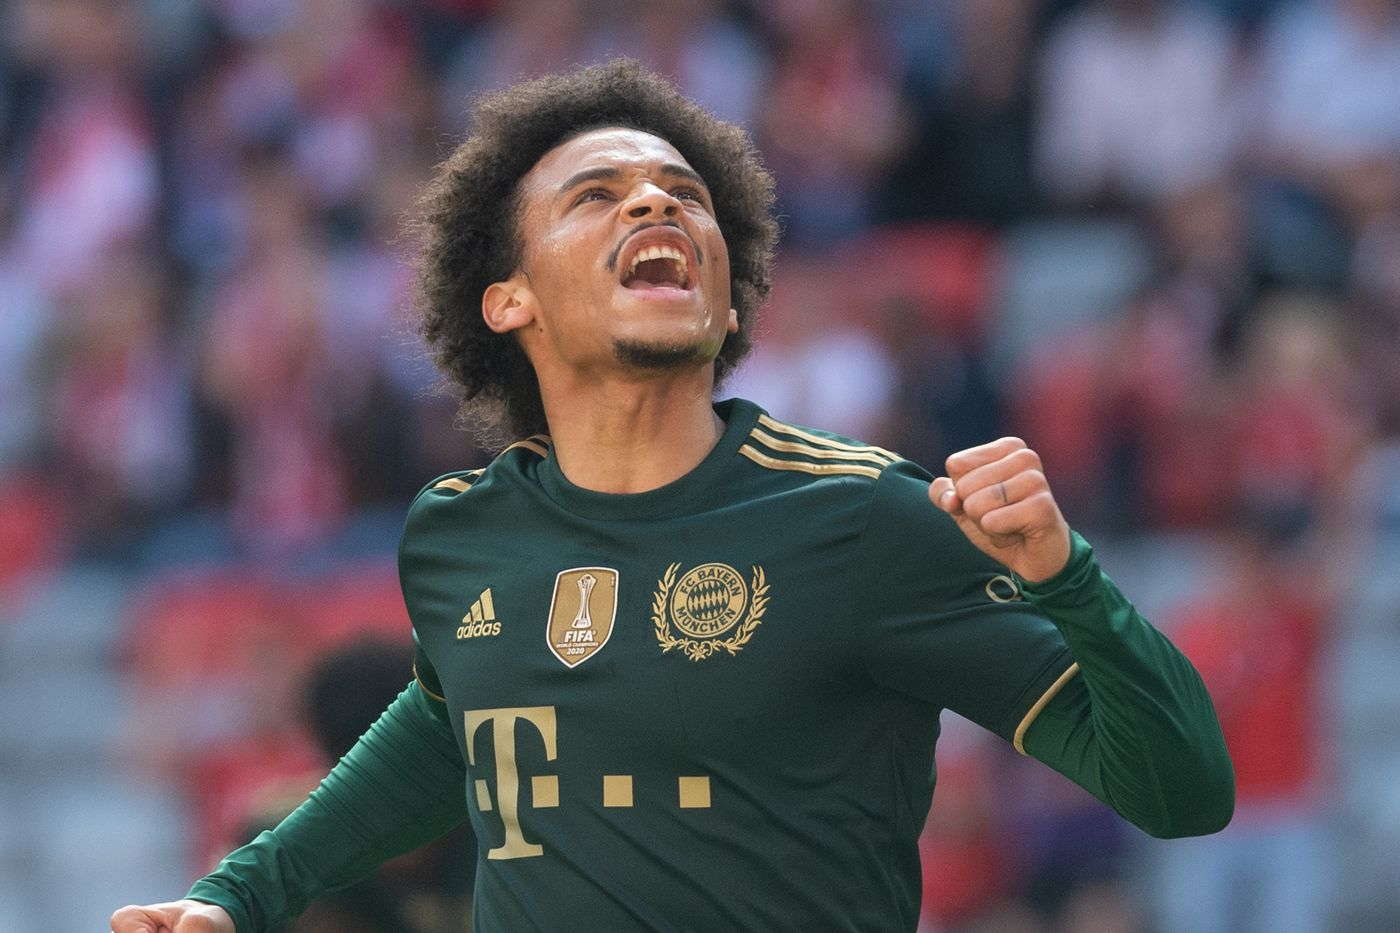 Julian Nagelsmann delighted with Leroy Sané's dazzling form at Bayern Munich - Bavarian Football Works